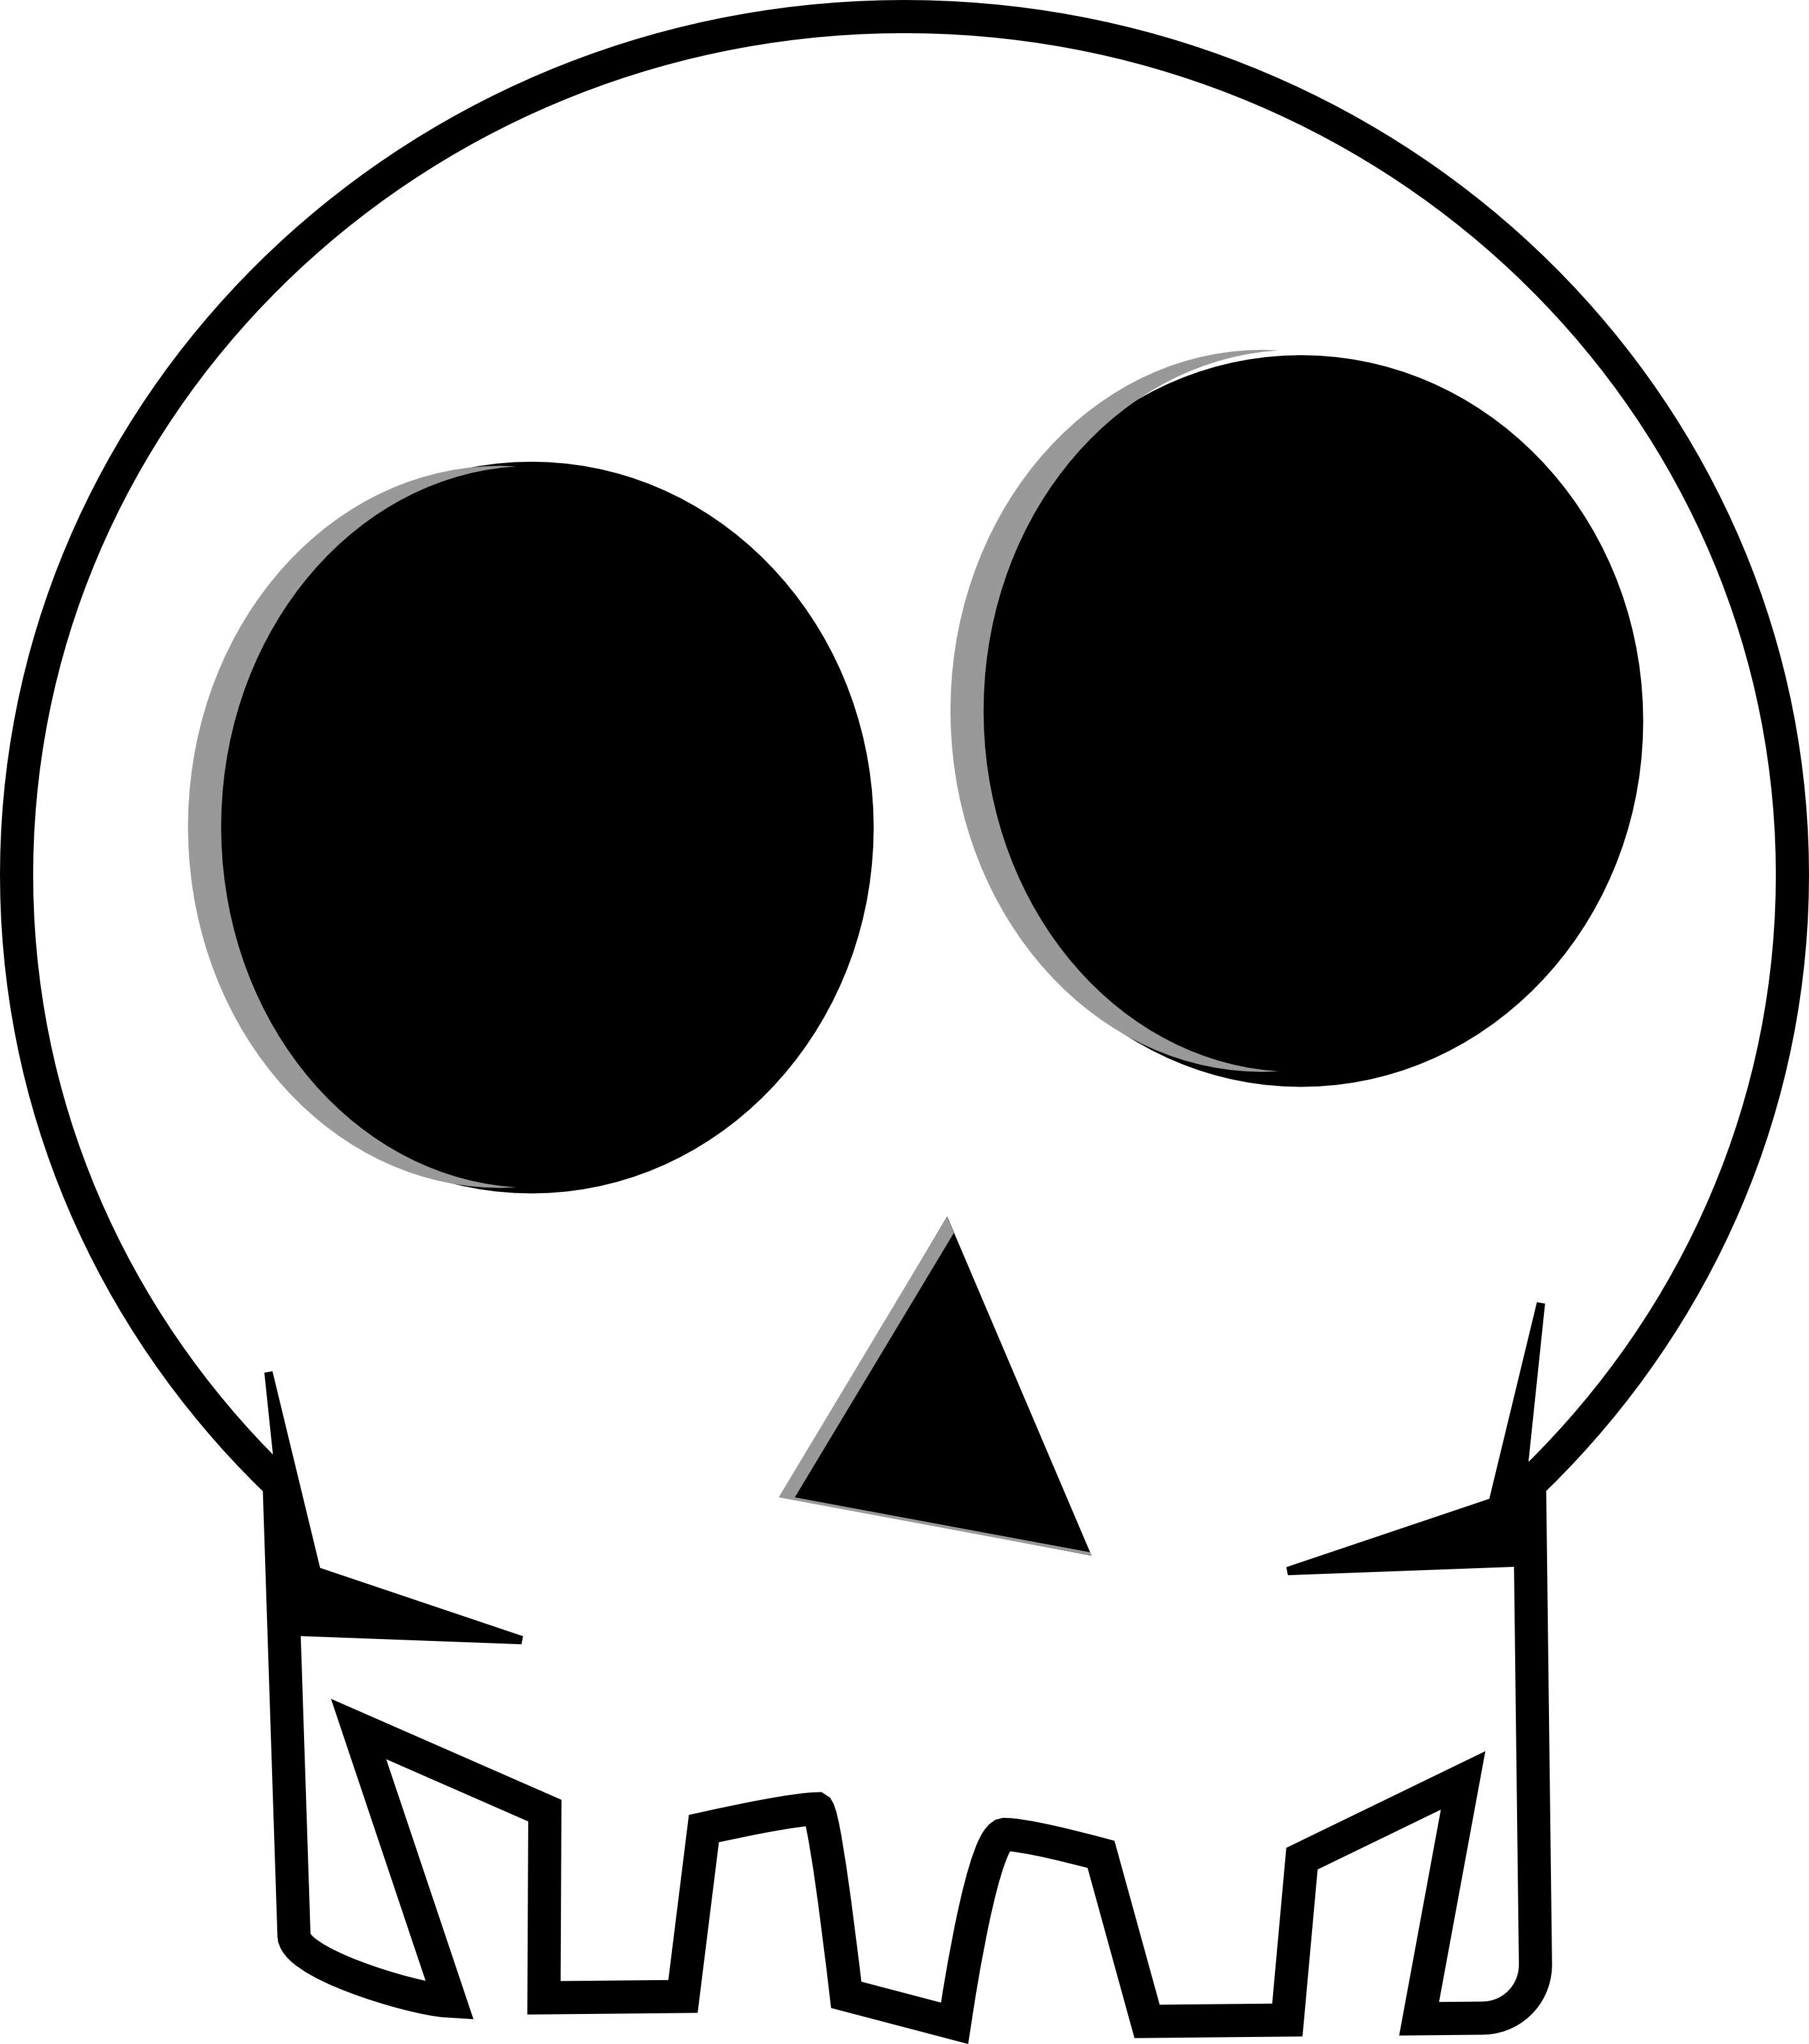 Dracula clipart halloween tombstone Skull hostted hostted WikiClipArt Skull